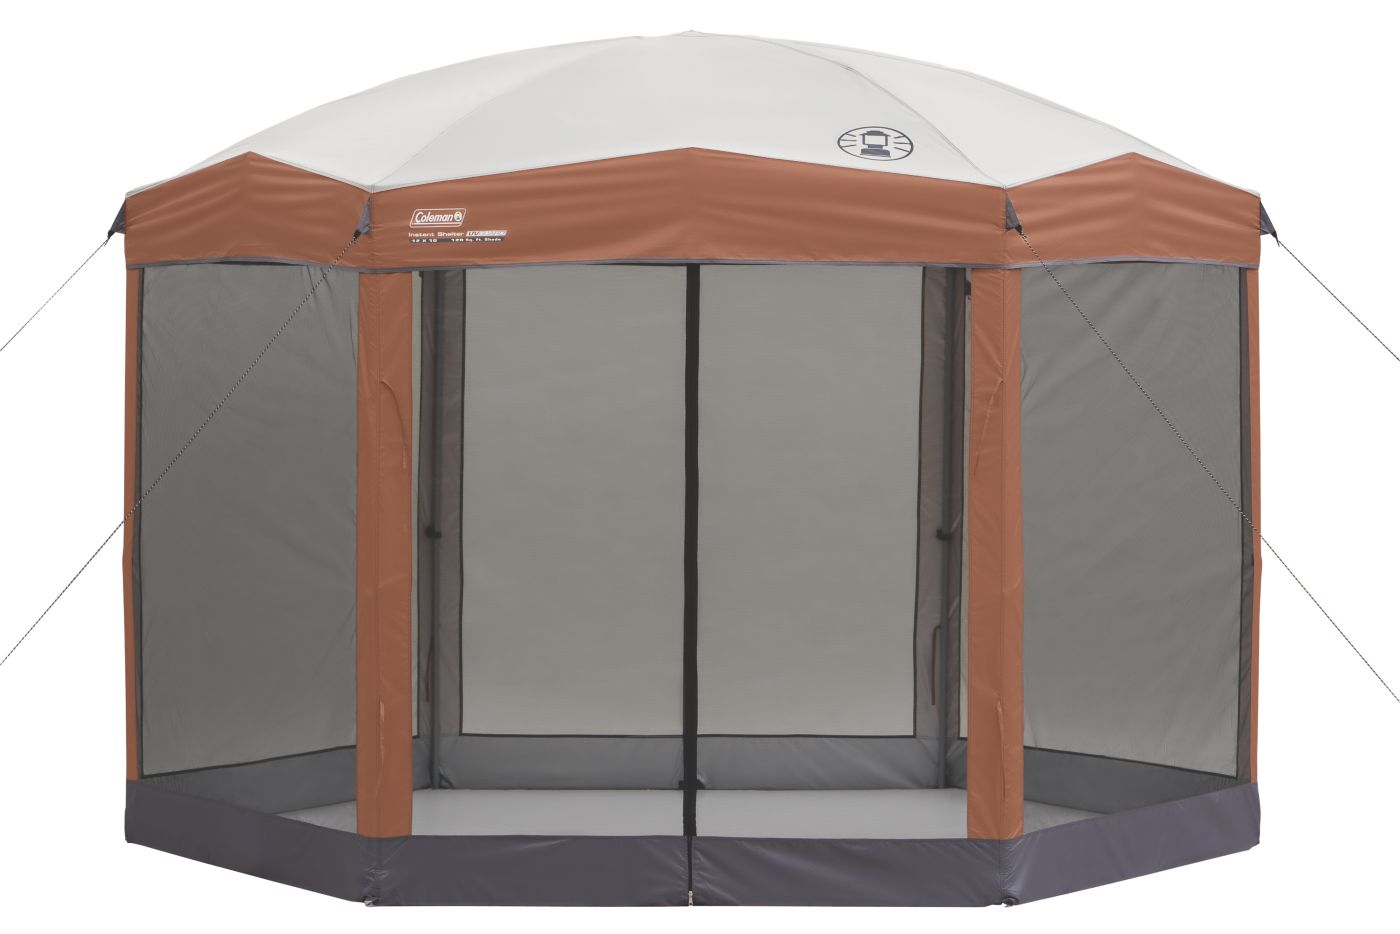 Back Home™ 12 x 10 Instant Screenhouse  sc 1 st  Coleman & Screened Canopy | Instant Canopy | Coleman